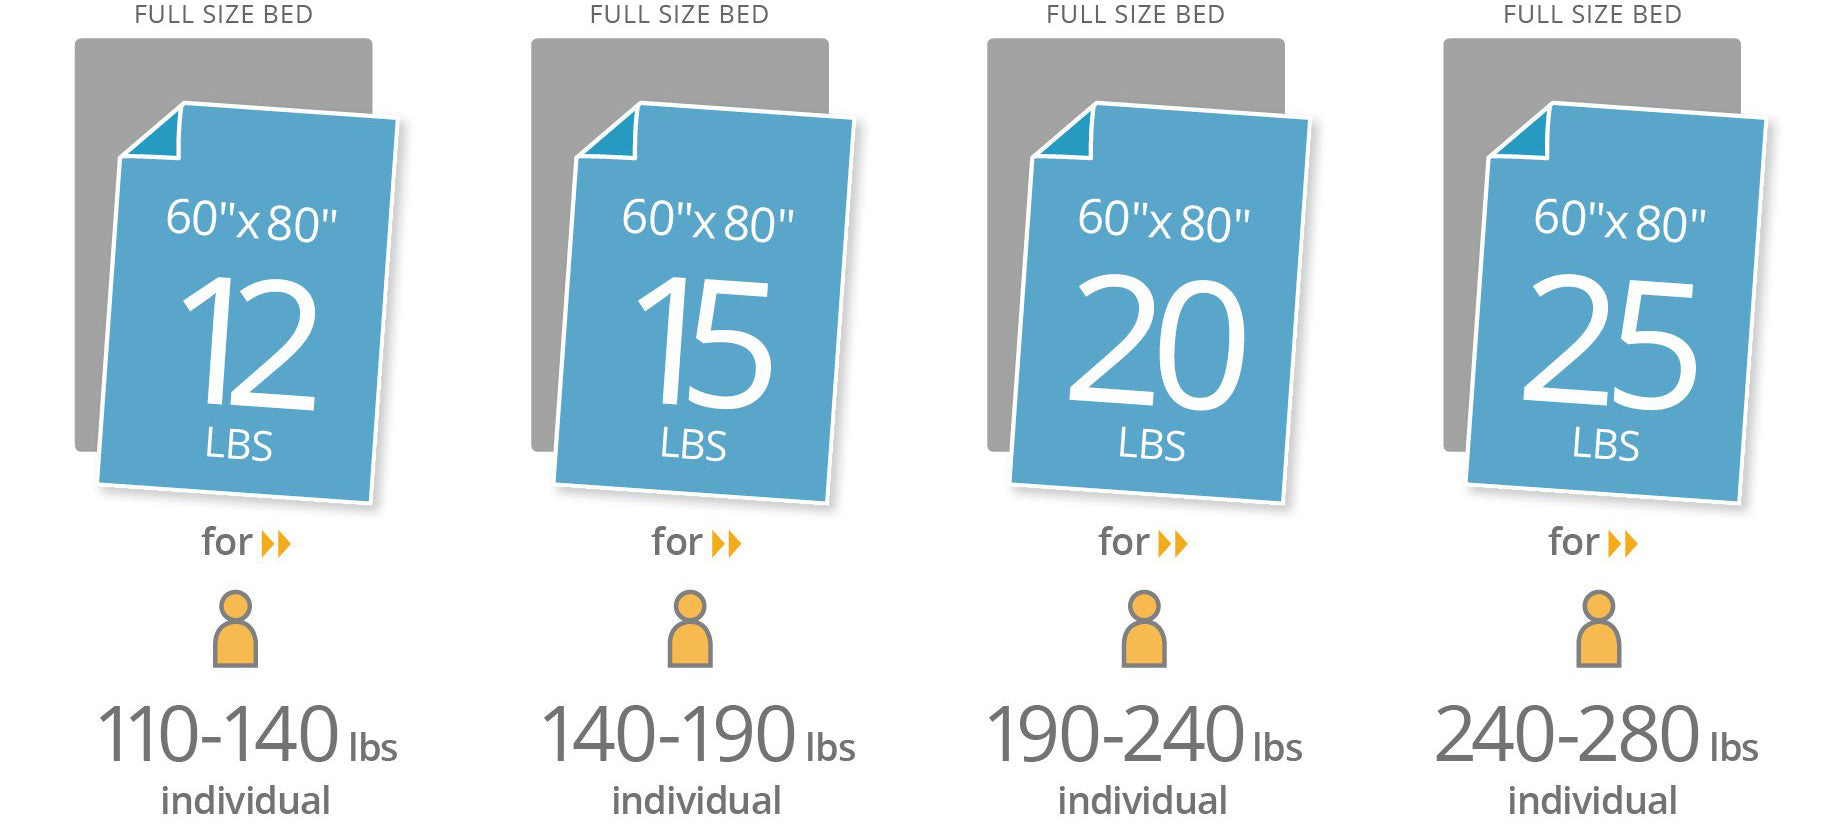 Full blanket size guide